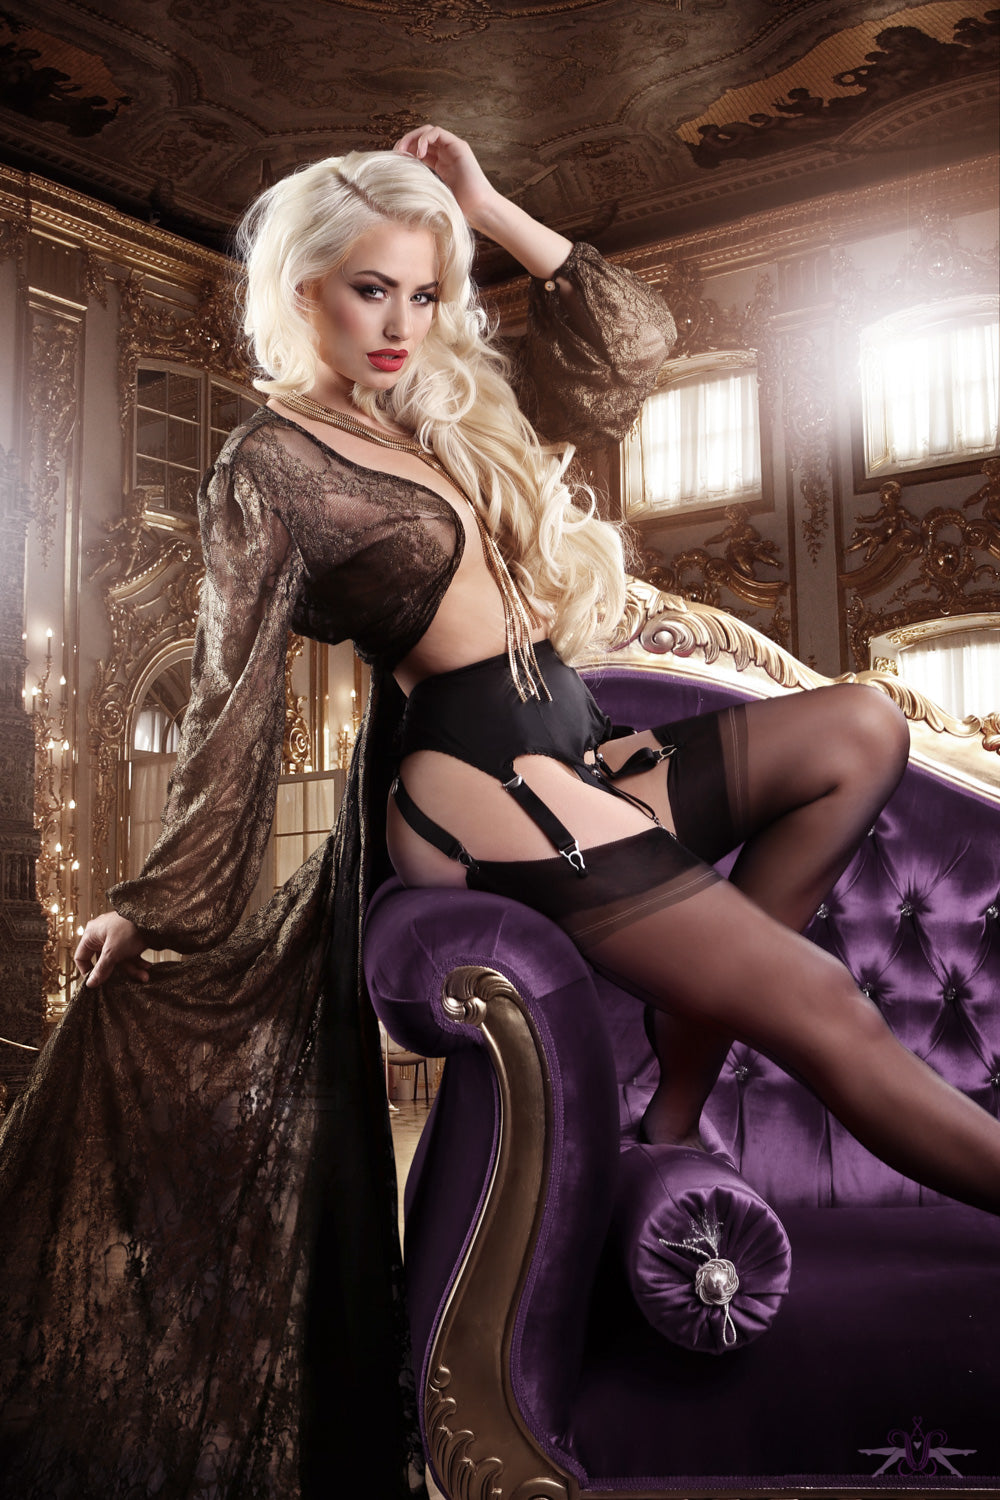 How to Choose and Wear Hosiery for a Boudoir Photo Shoot